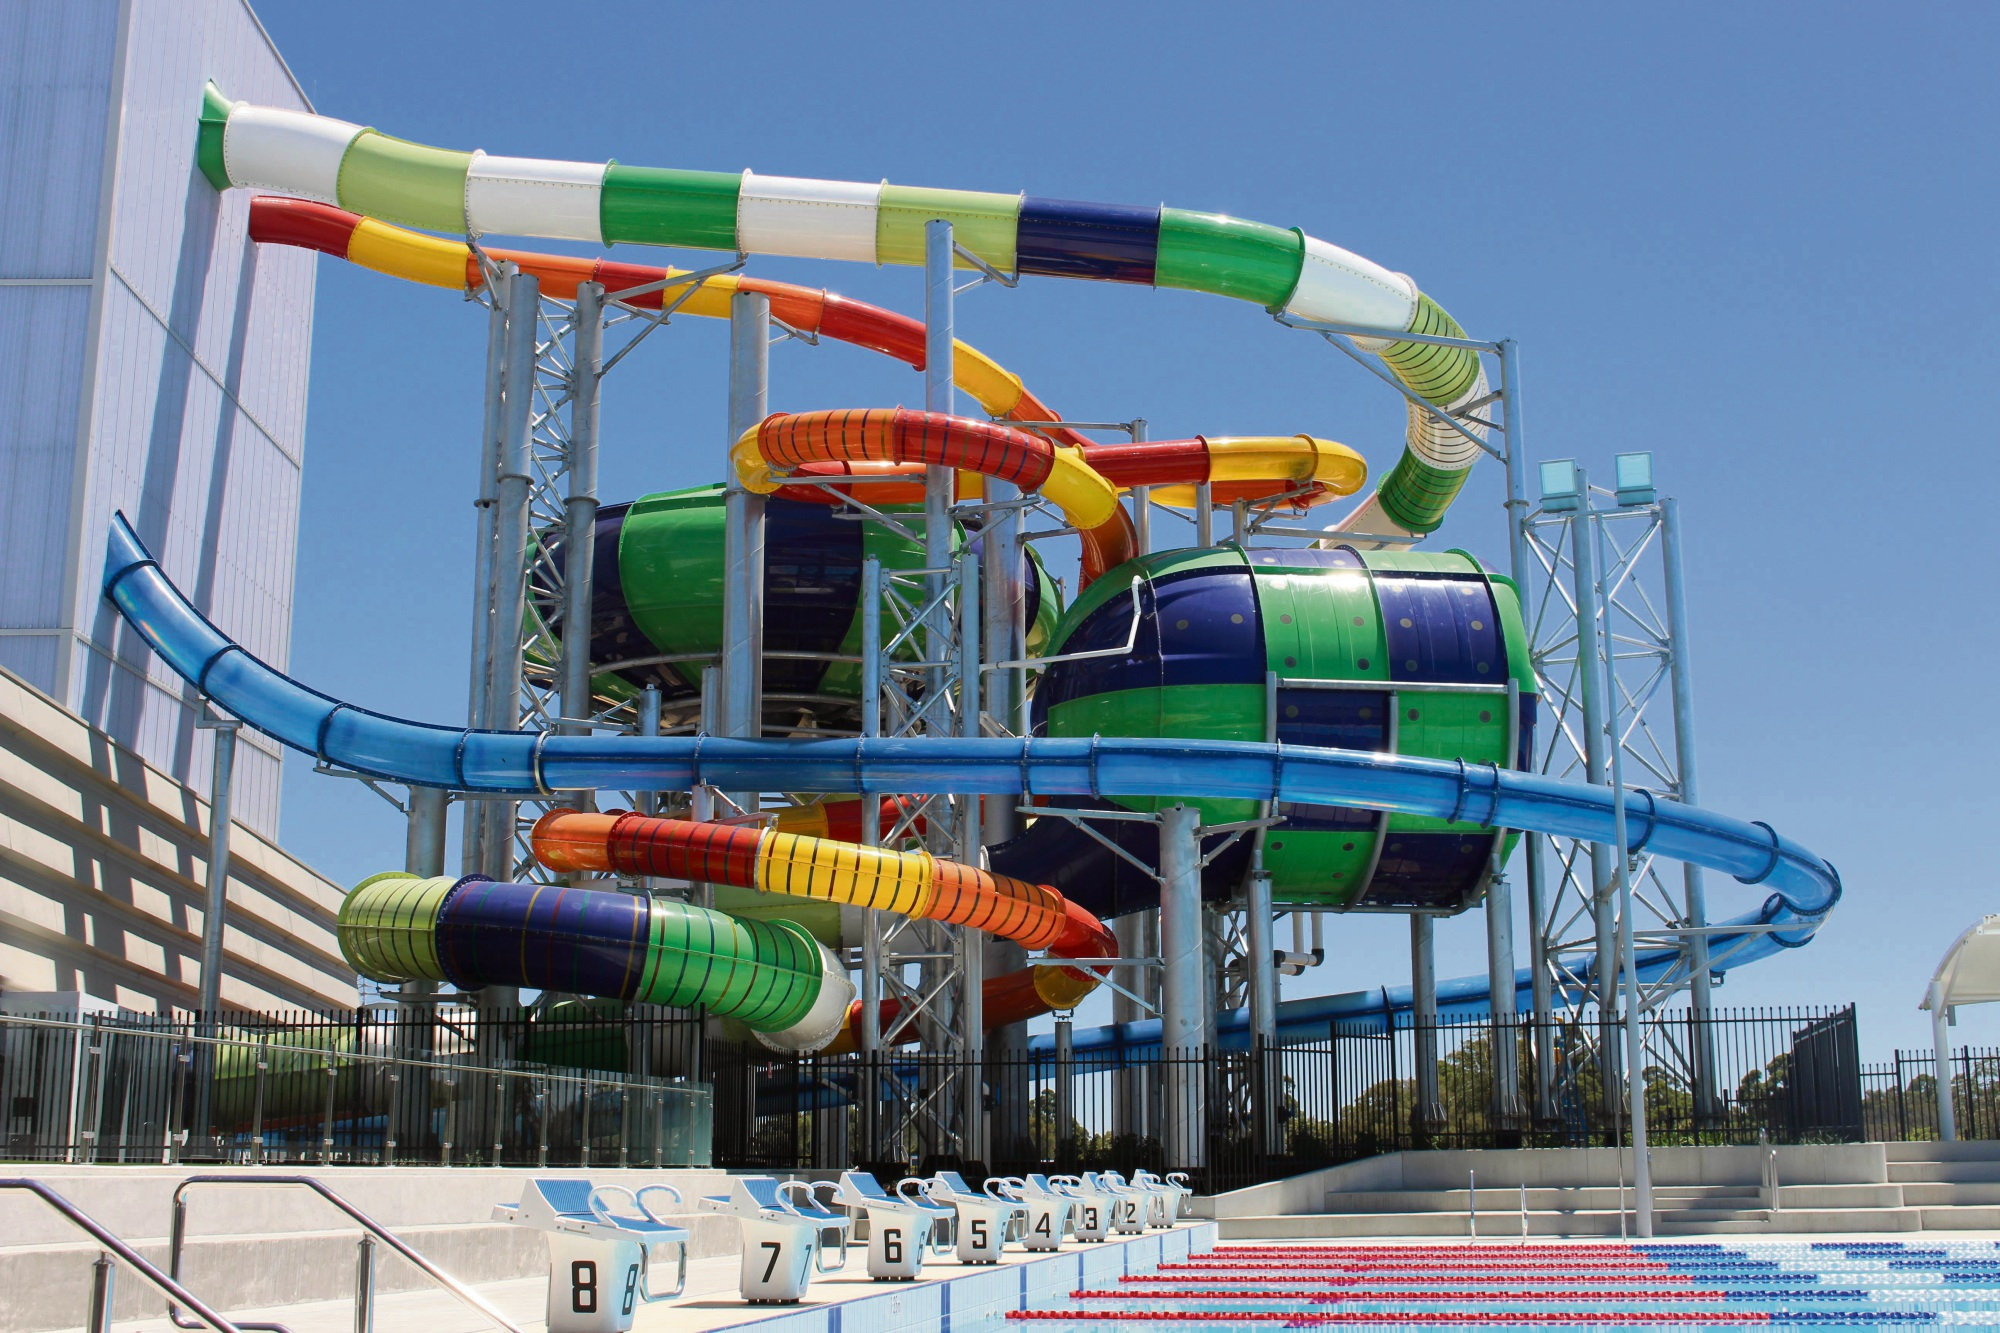 The waterslides which will be popular with thrill-seekers.